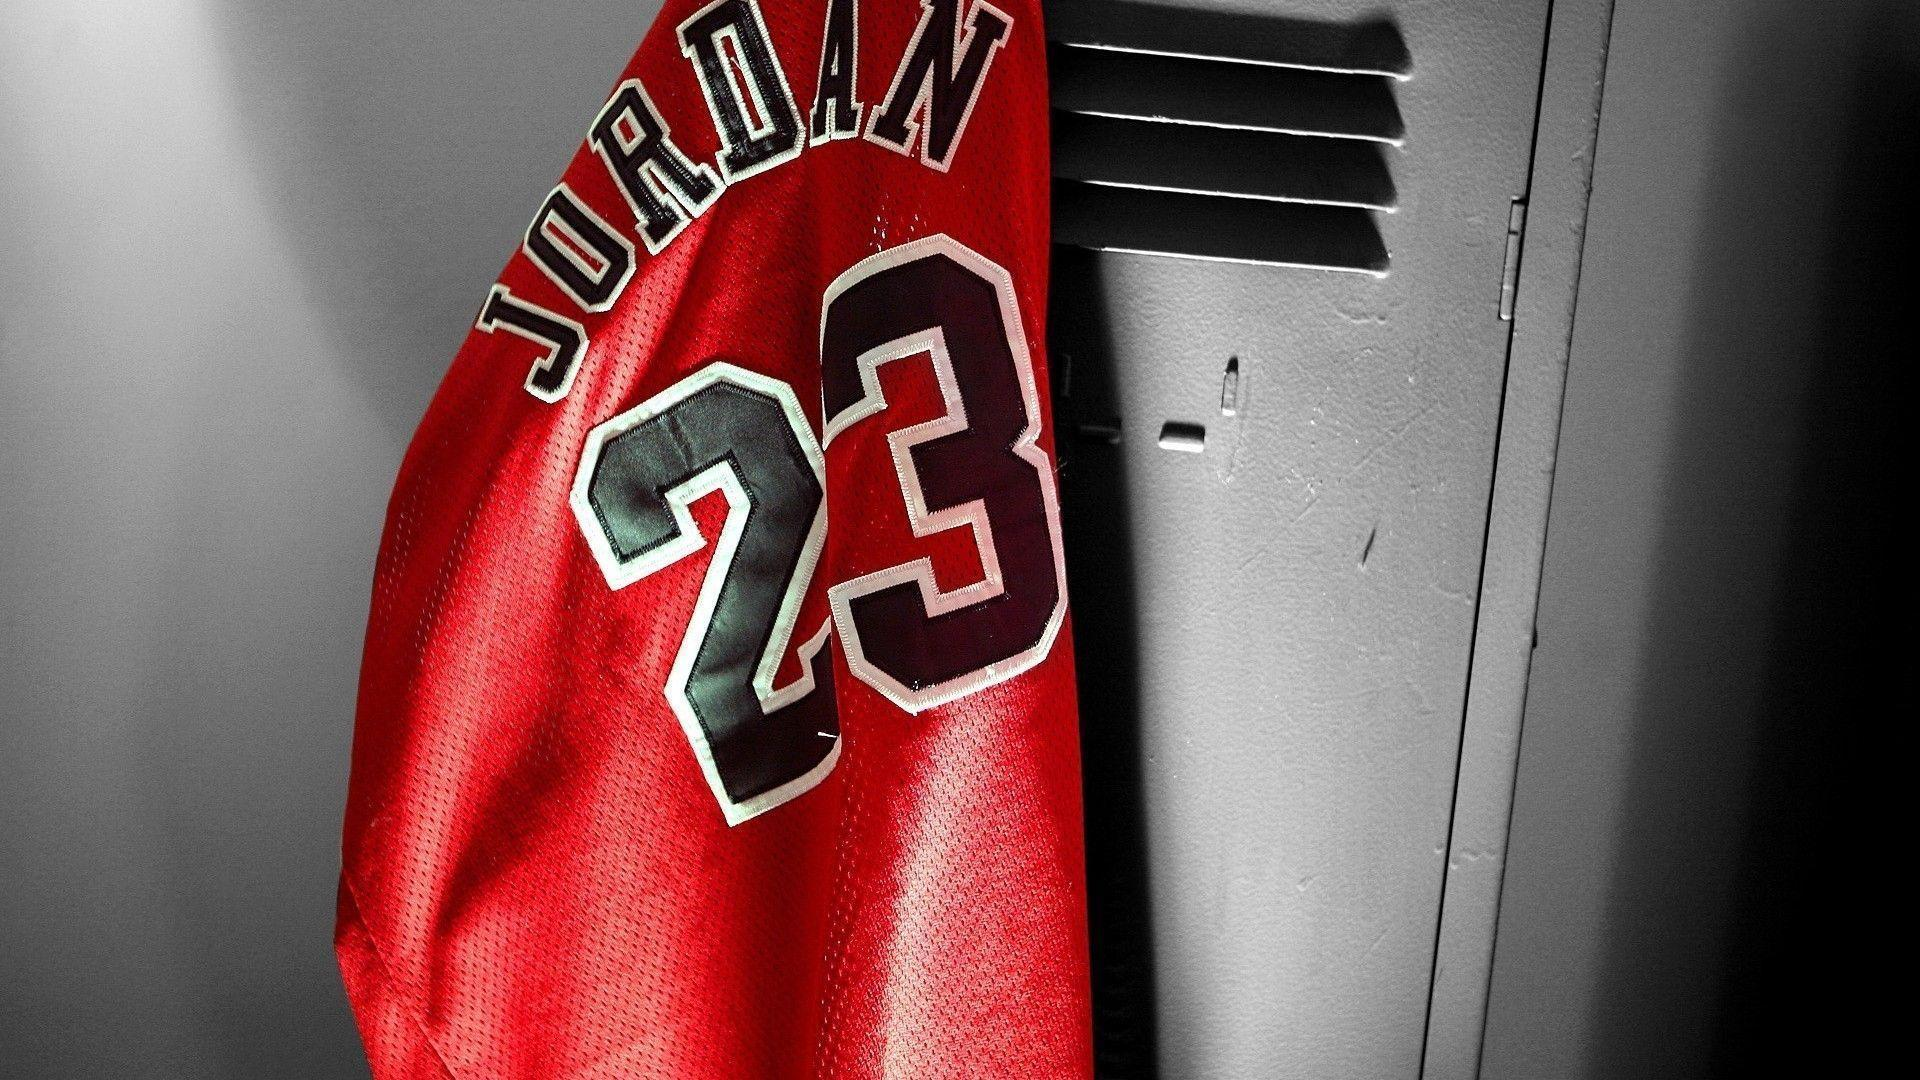 Michael Jordan Jersey Wallpaper: Michael Jordan Wallpapers 1920x1080